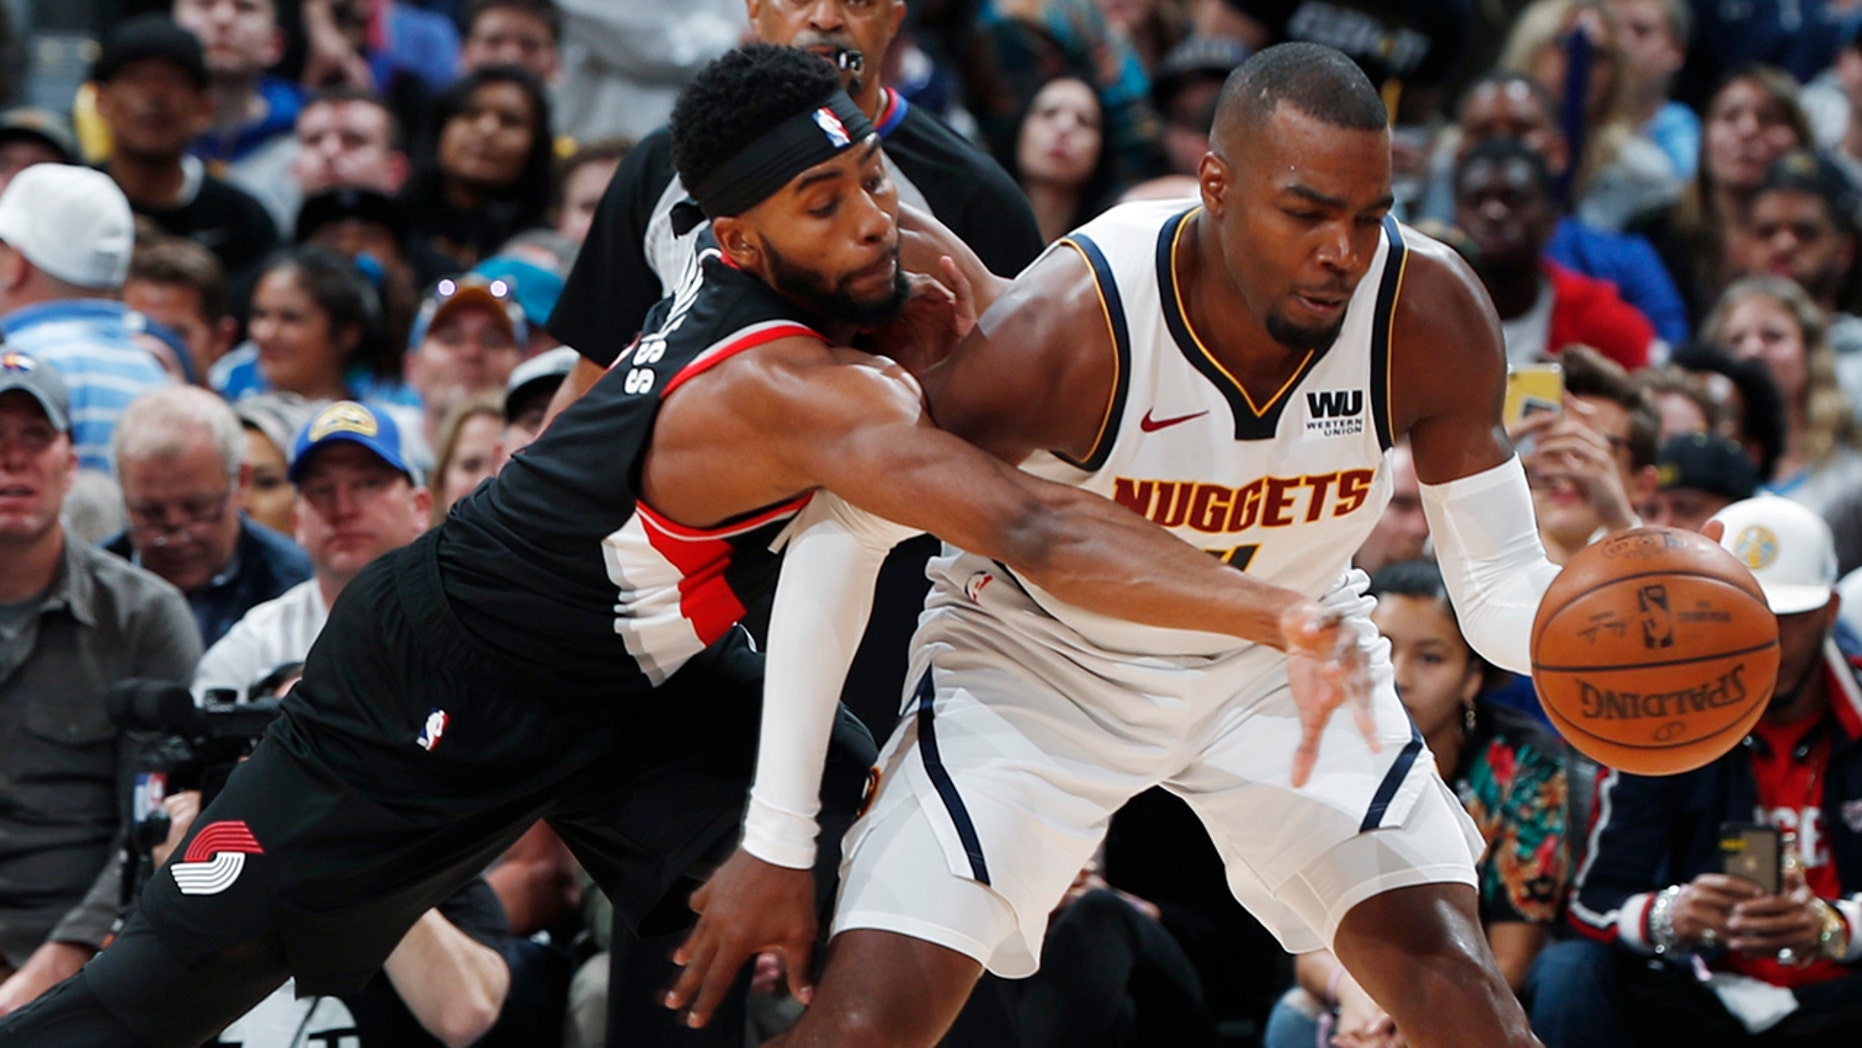 Portland Trail Blazers forward Maurice Harkless, left, tries to steal the ball from Denver Nuggets forward Paul Millsap during the second half of Game 5 of an NBA basketball second-round playoff series Tuesday, May 7, 2019, in Denver. The Nuggets won 124-98. (AP Photo/David Zalubowski)